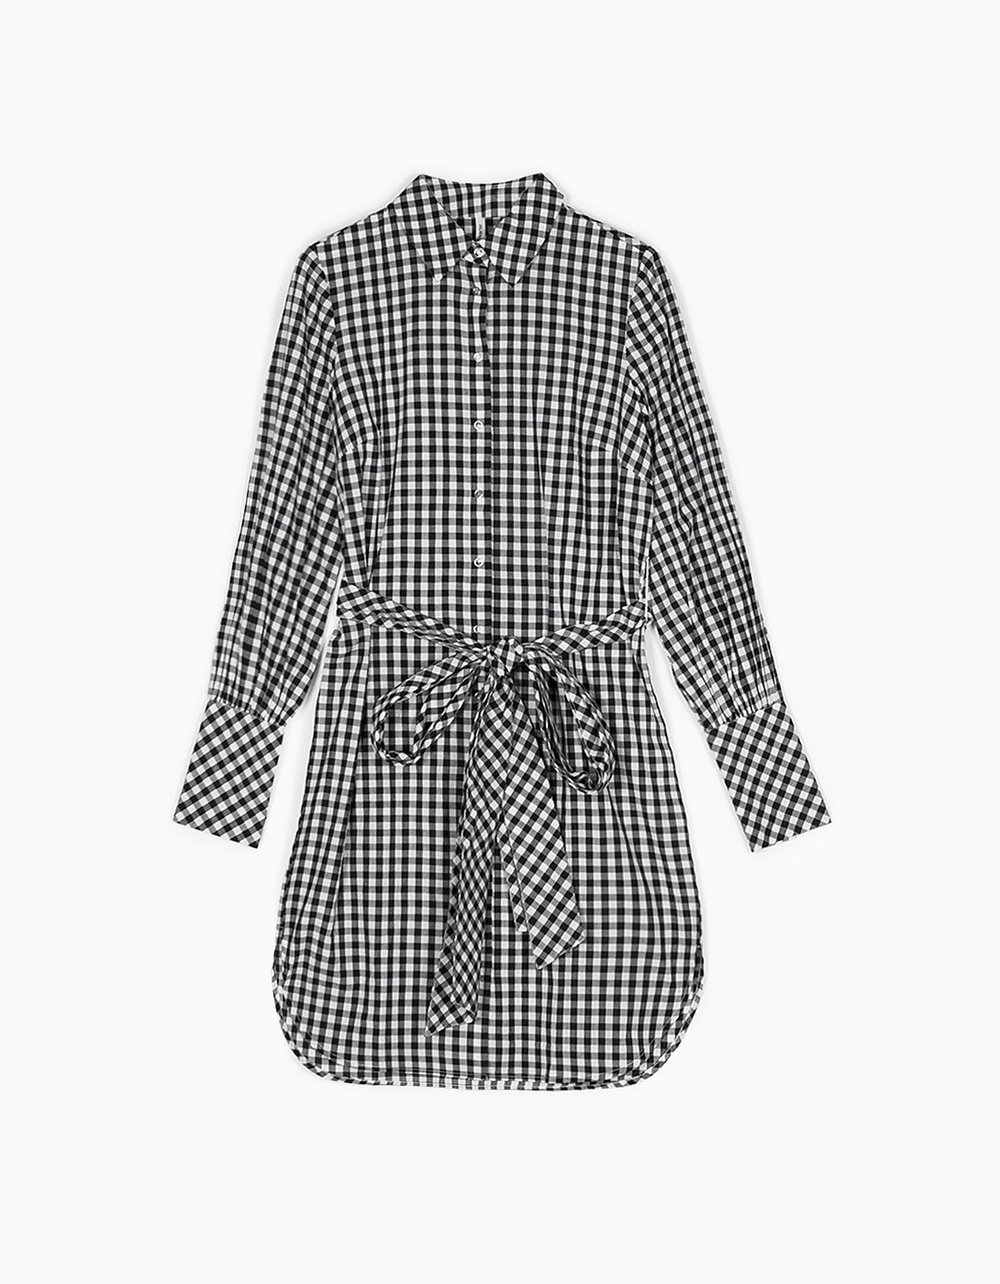 stradivarius shirt-dress - Out of stock :(